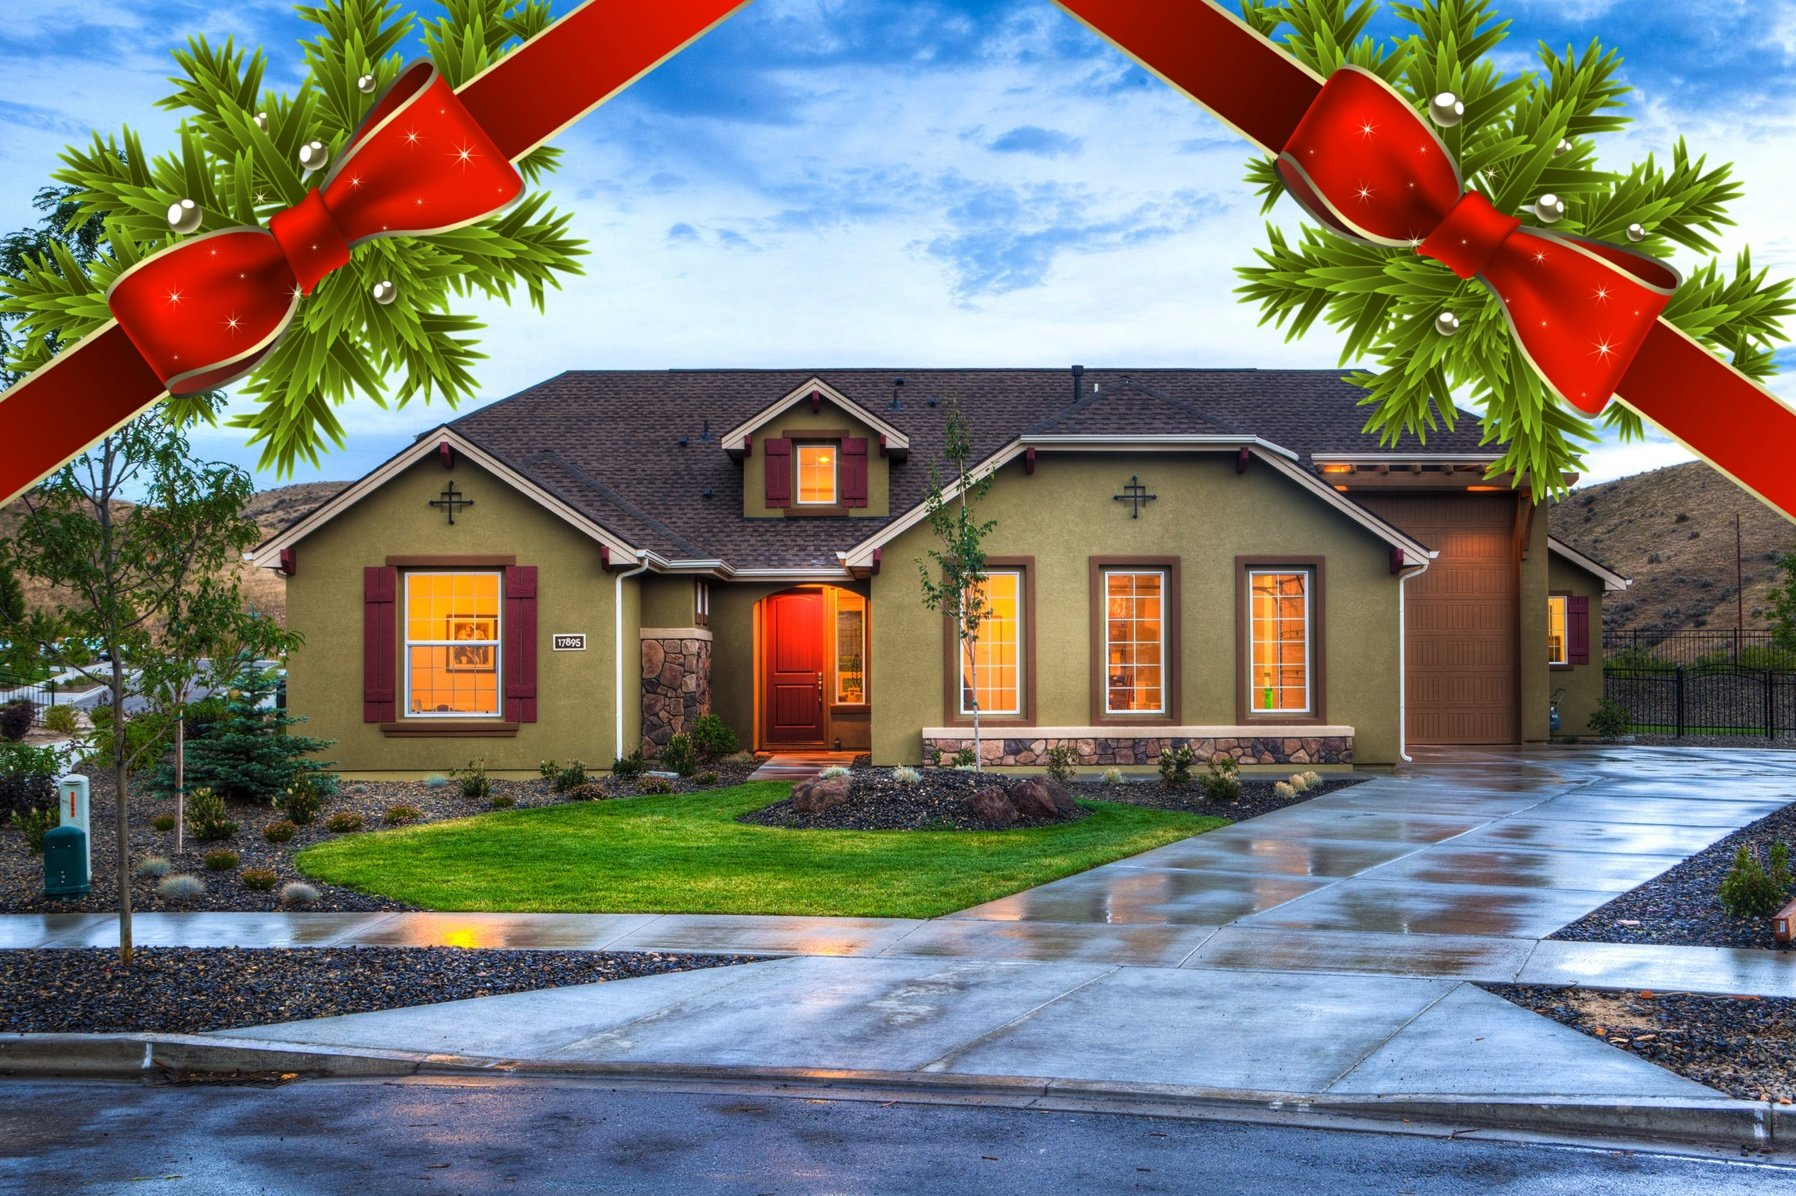 Three Reasons Home Window Films Are A Great Gift For Your House - Home Window Tinting in Tulsa, Oklahoma